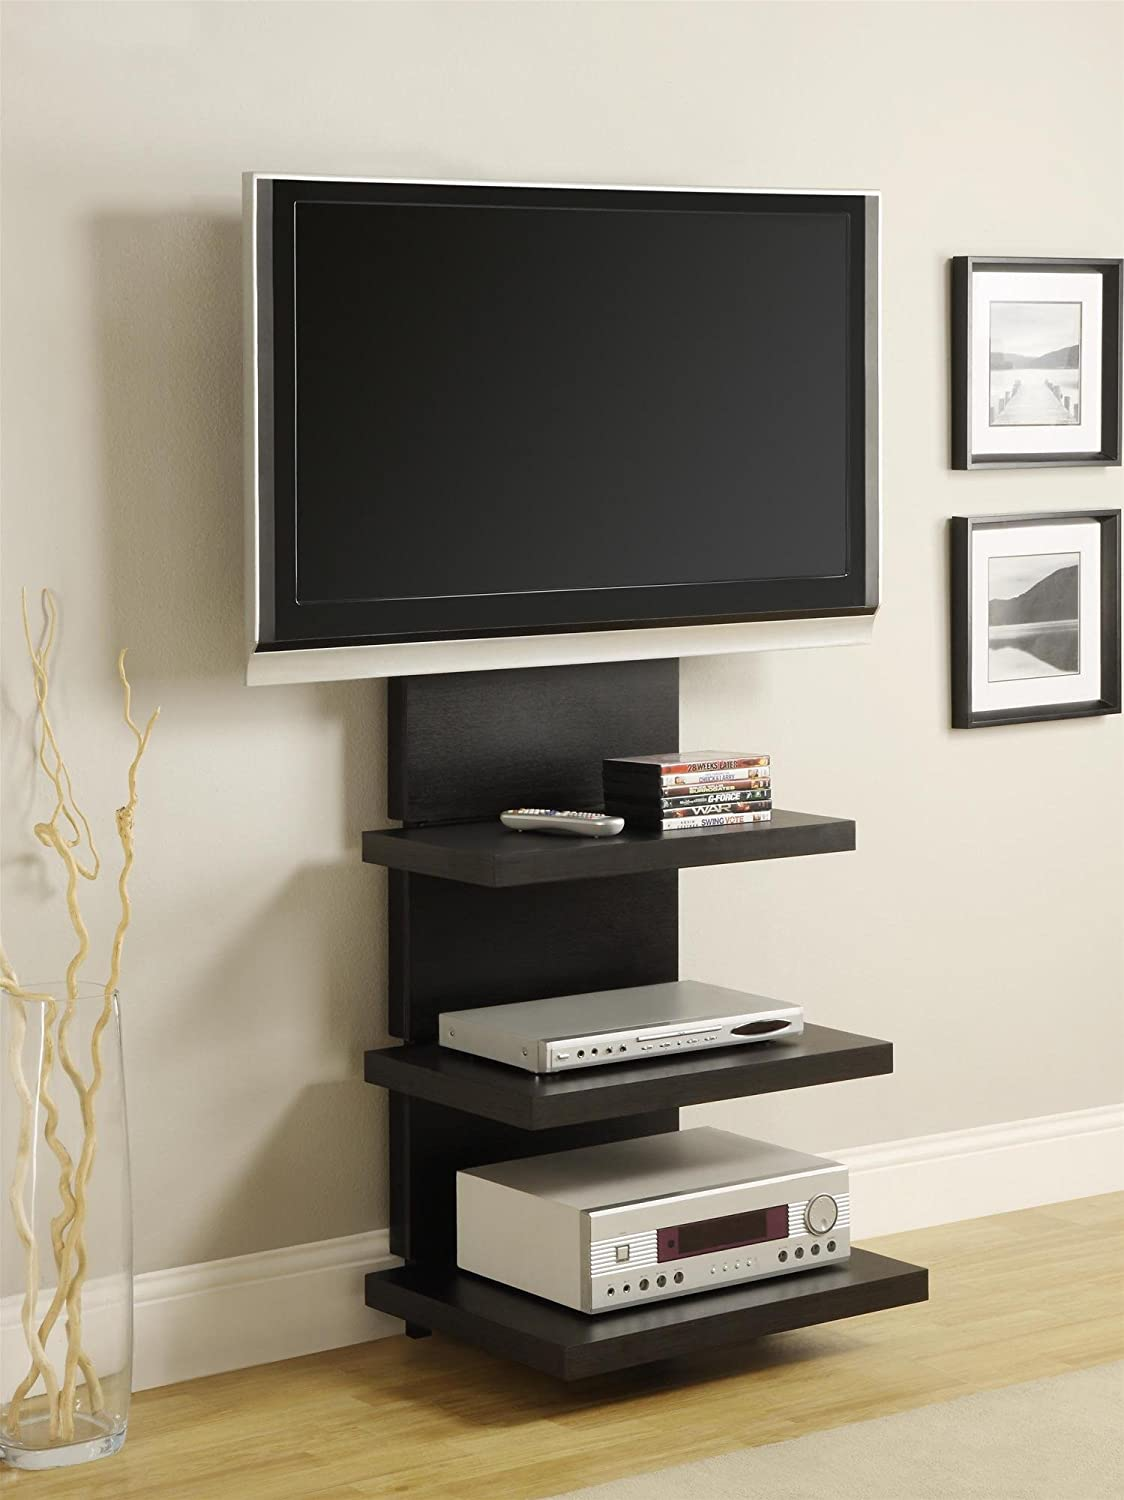 wall mount tv stand Amazon.com: Ameriwood Home Elevation TV Stand for TVs 60